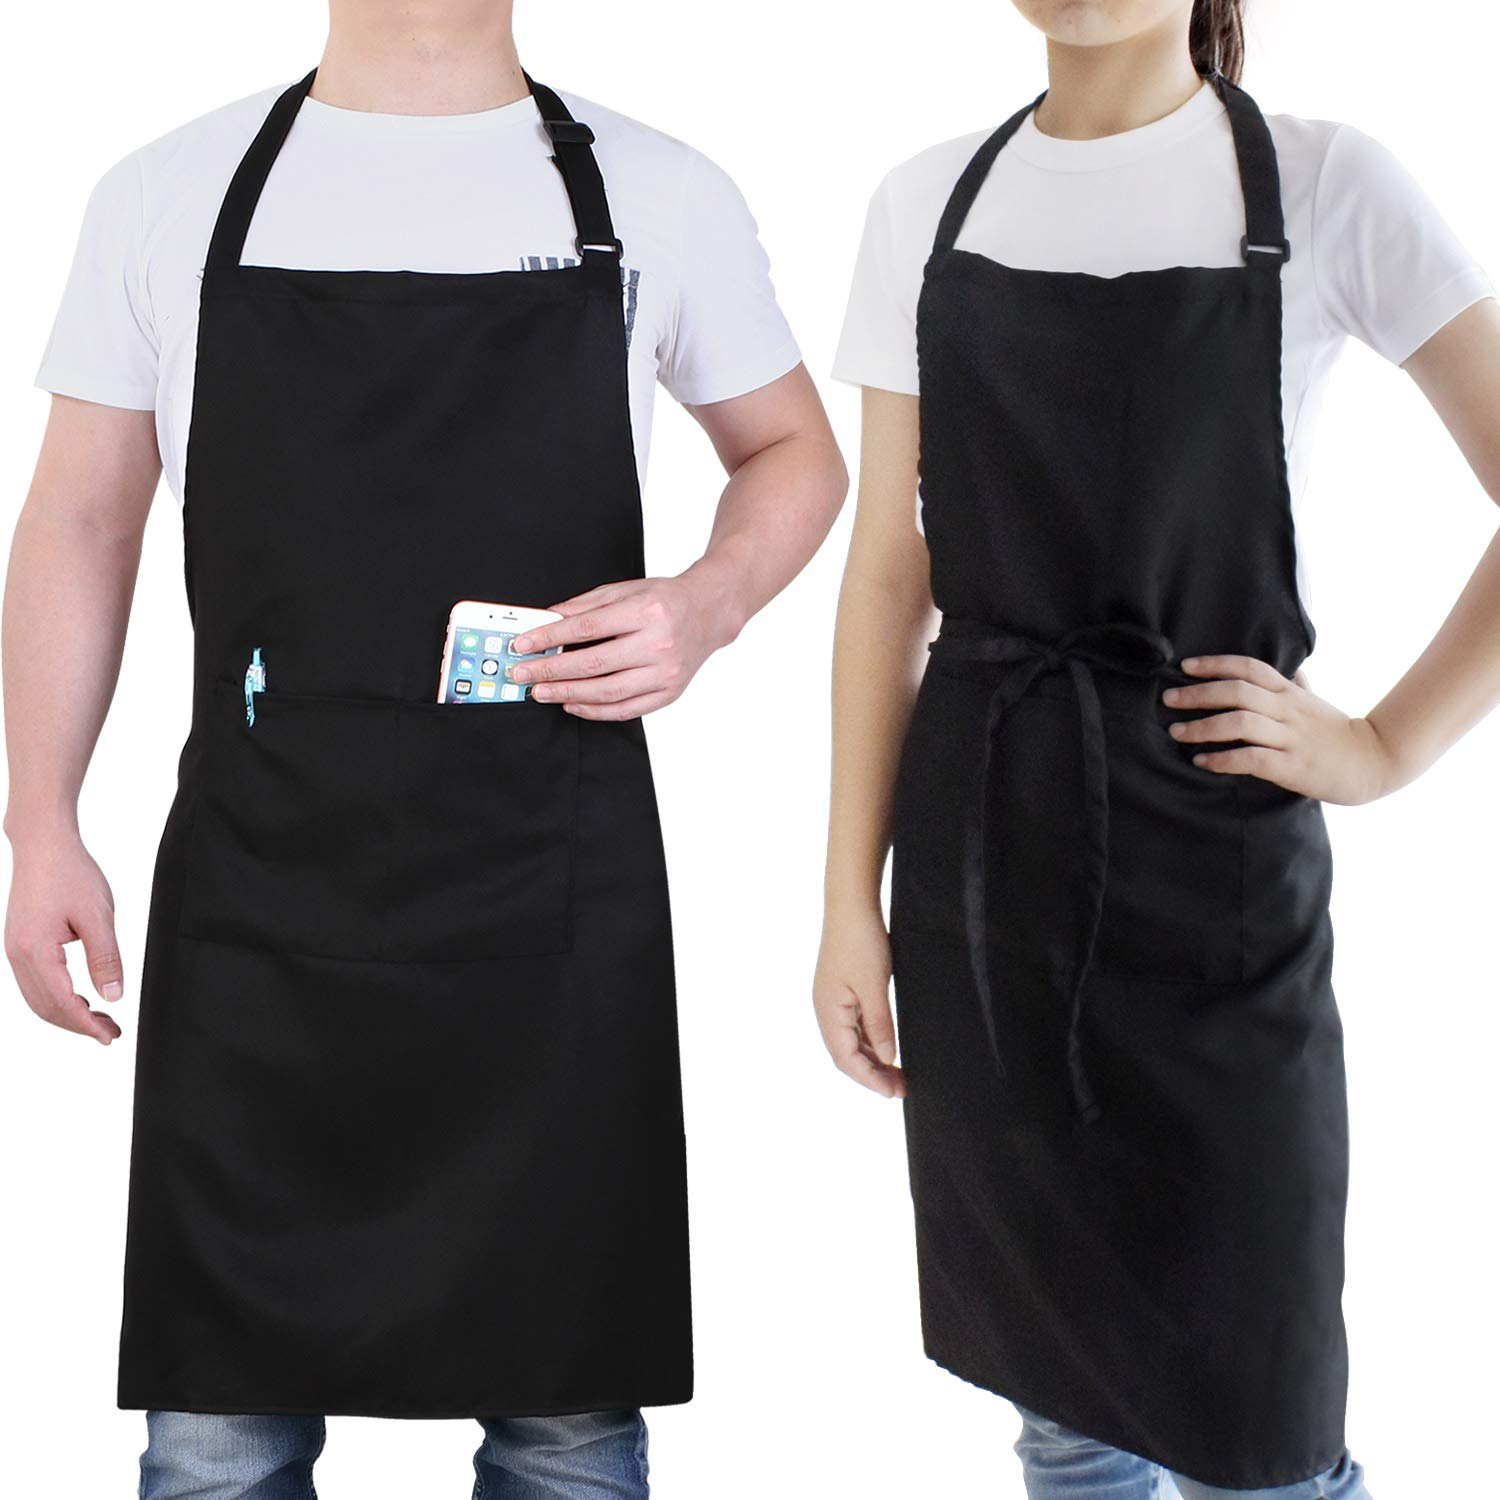 Will Well 2 Pack Adjustable Waterproof Bib Apron, Comfortable Cooking Kitchen Aprons with 2 Pockets for Women Men Chef, Black by Will Well